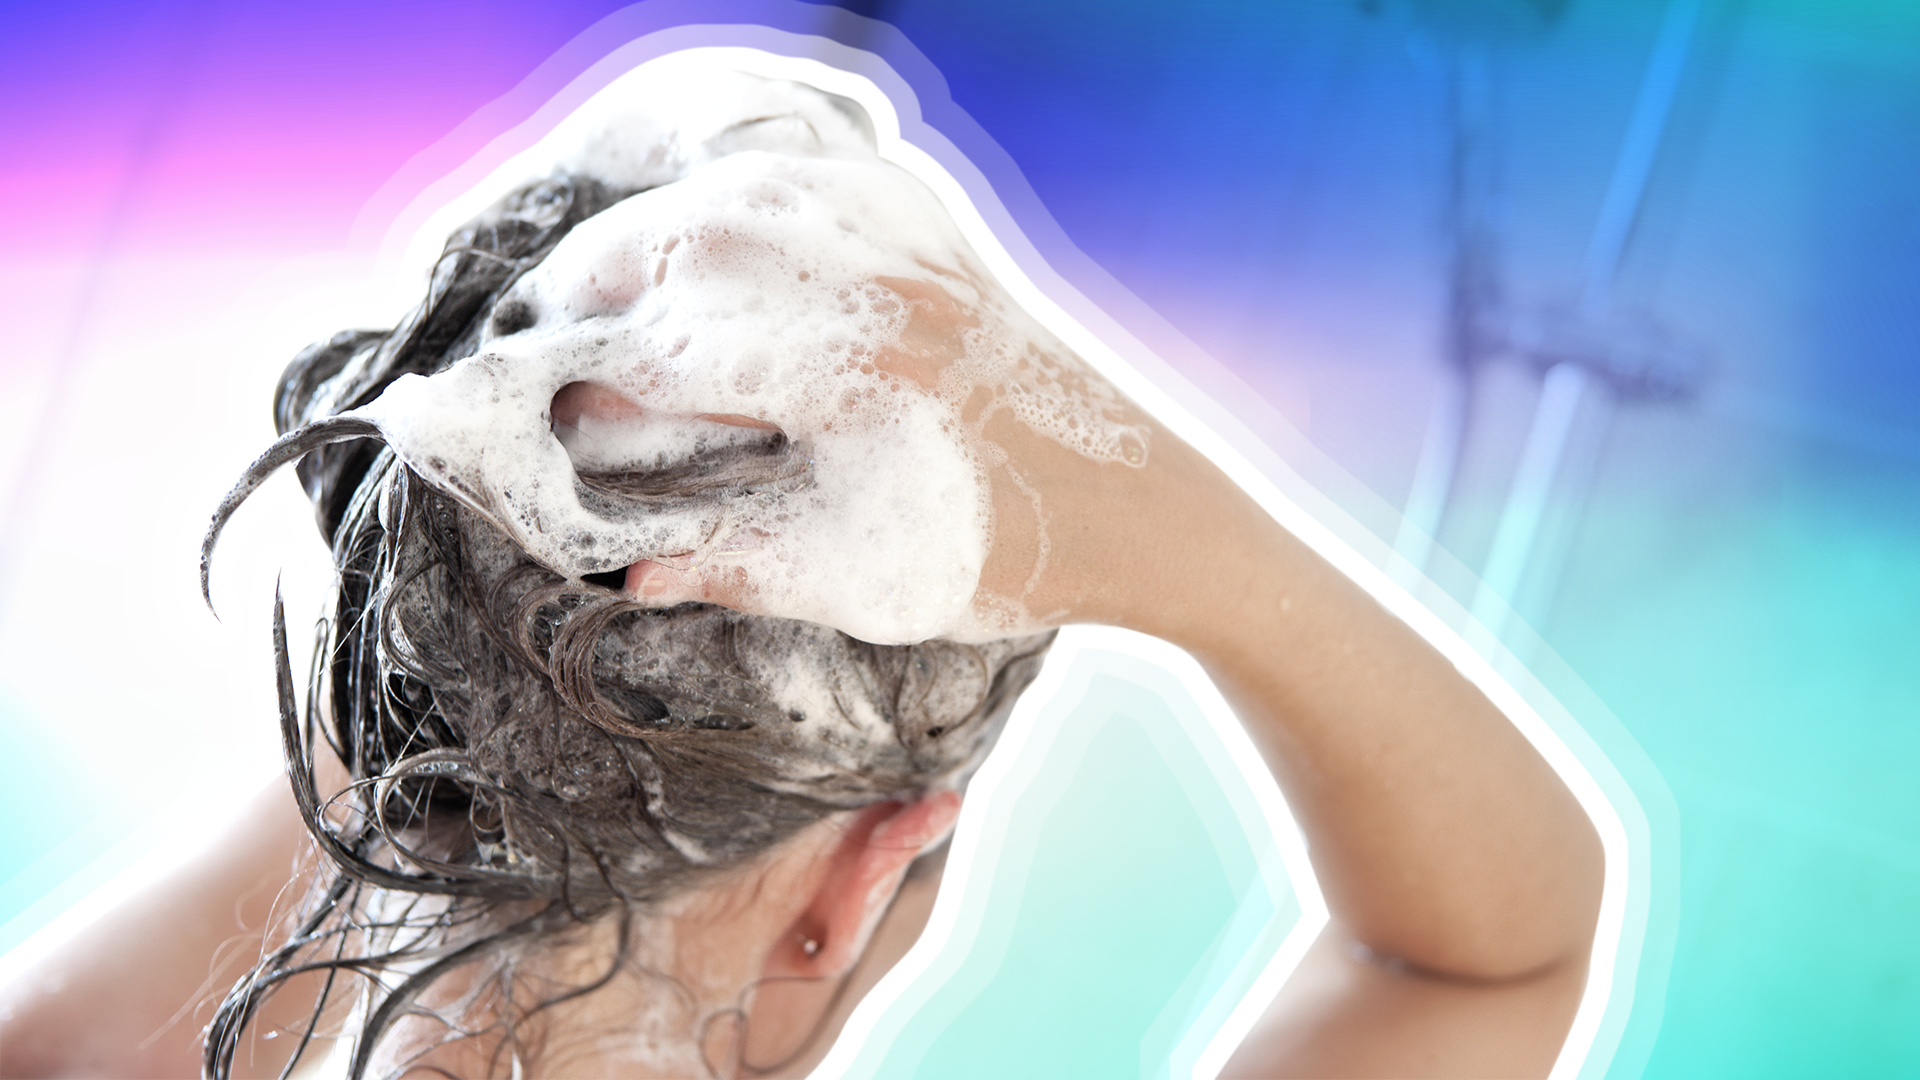 How often do you wash your hair